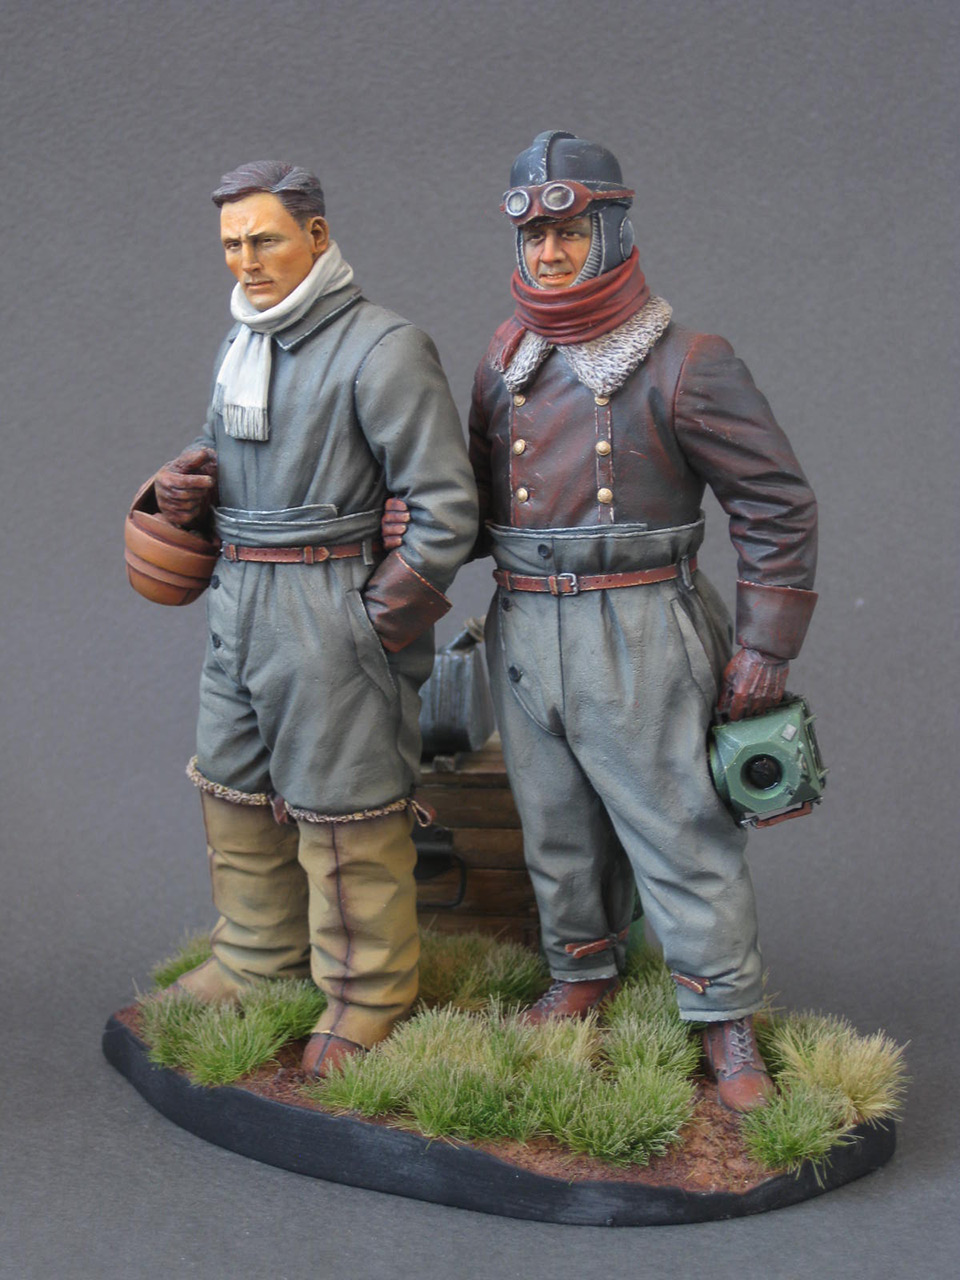 Figures: German aviators, WWI, photo #2